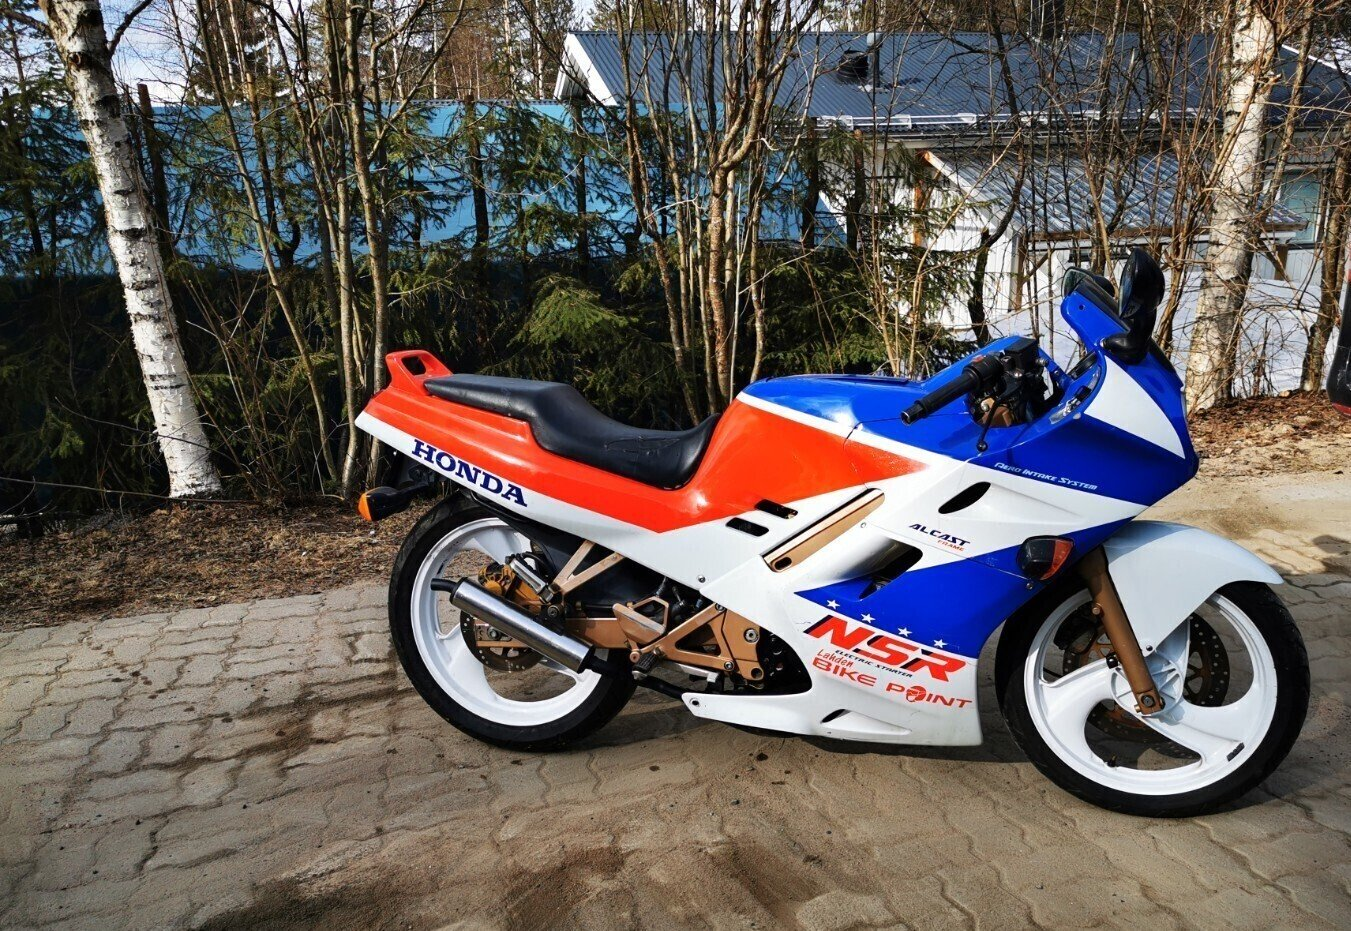 1992 Honda Nsr 125 For Sale (picture 3 of 3)